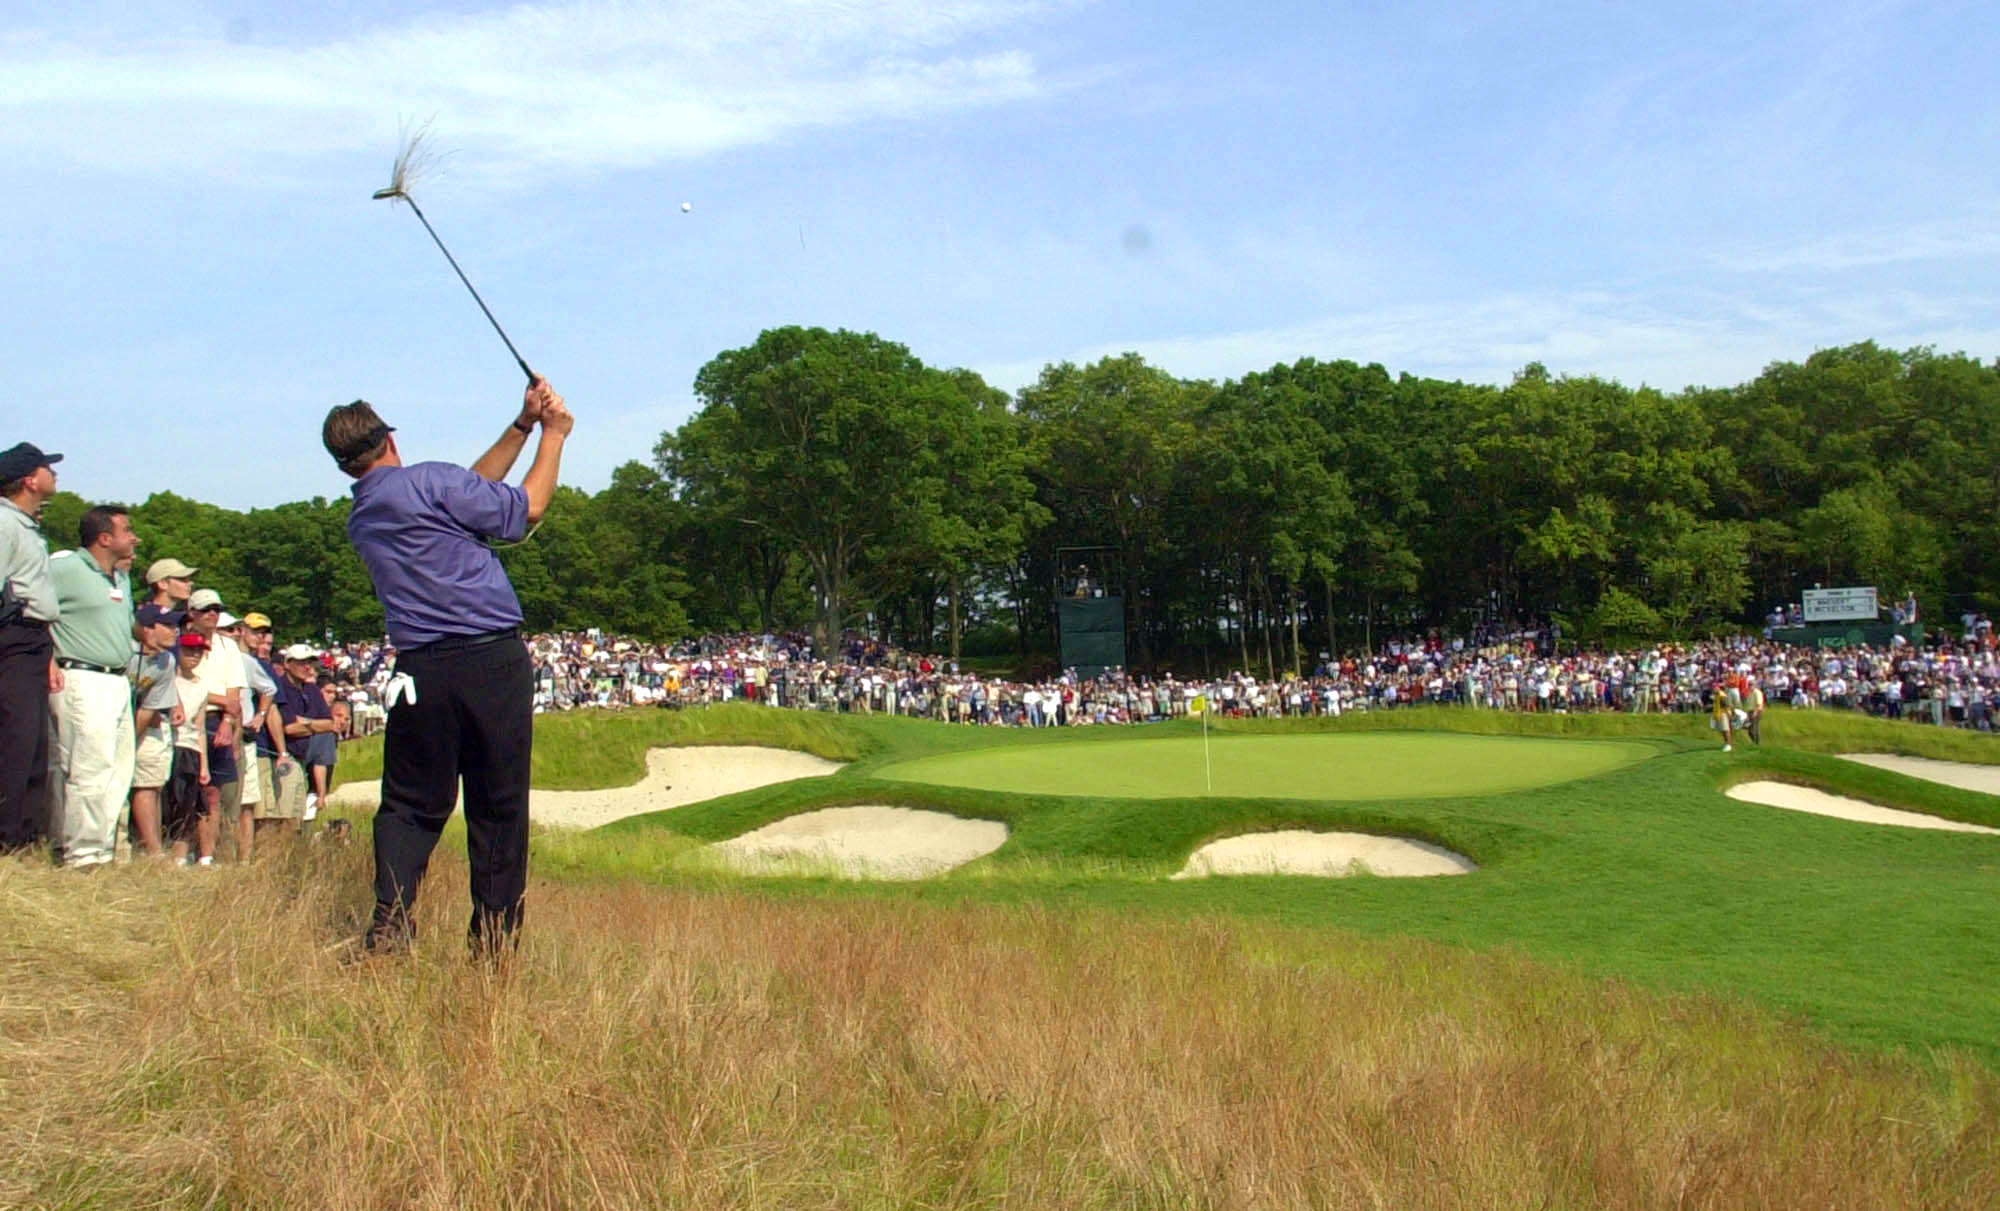 In this June 16, 2002, file photo, Phil Mickelson hits to the fifth green from the rough during the final round of the U.S. Open Golf Championship at the Black Course of Bethpage State Park in Farmingdale, N.Y. The PGA of America announced Tuesday, Sept. 17, 2013, that course will host the 2019 PGA Championship and 2024 Ryder Cup